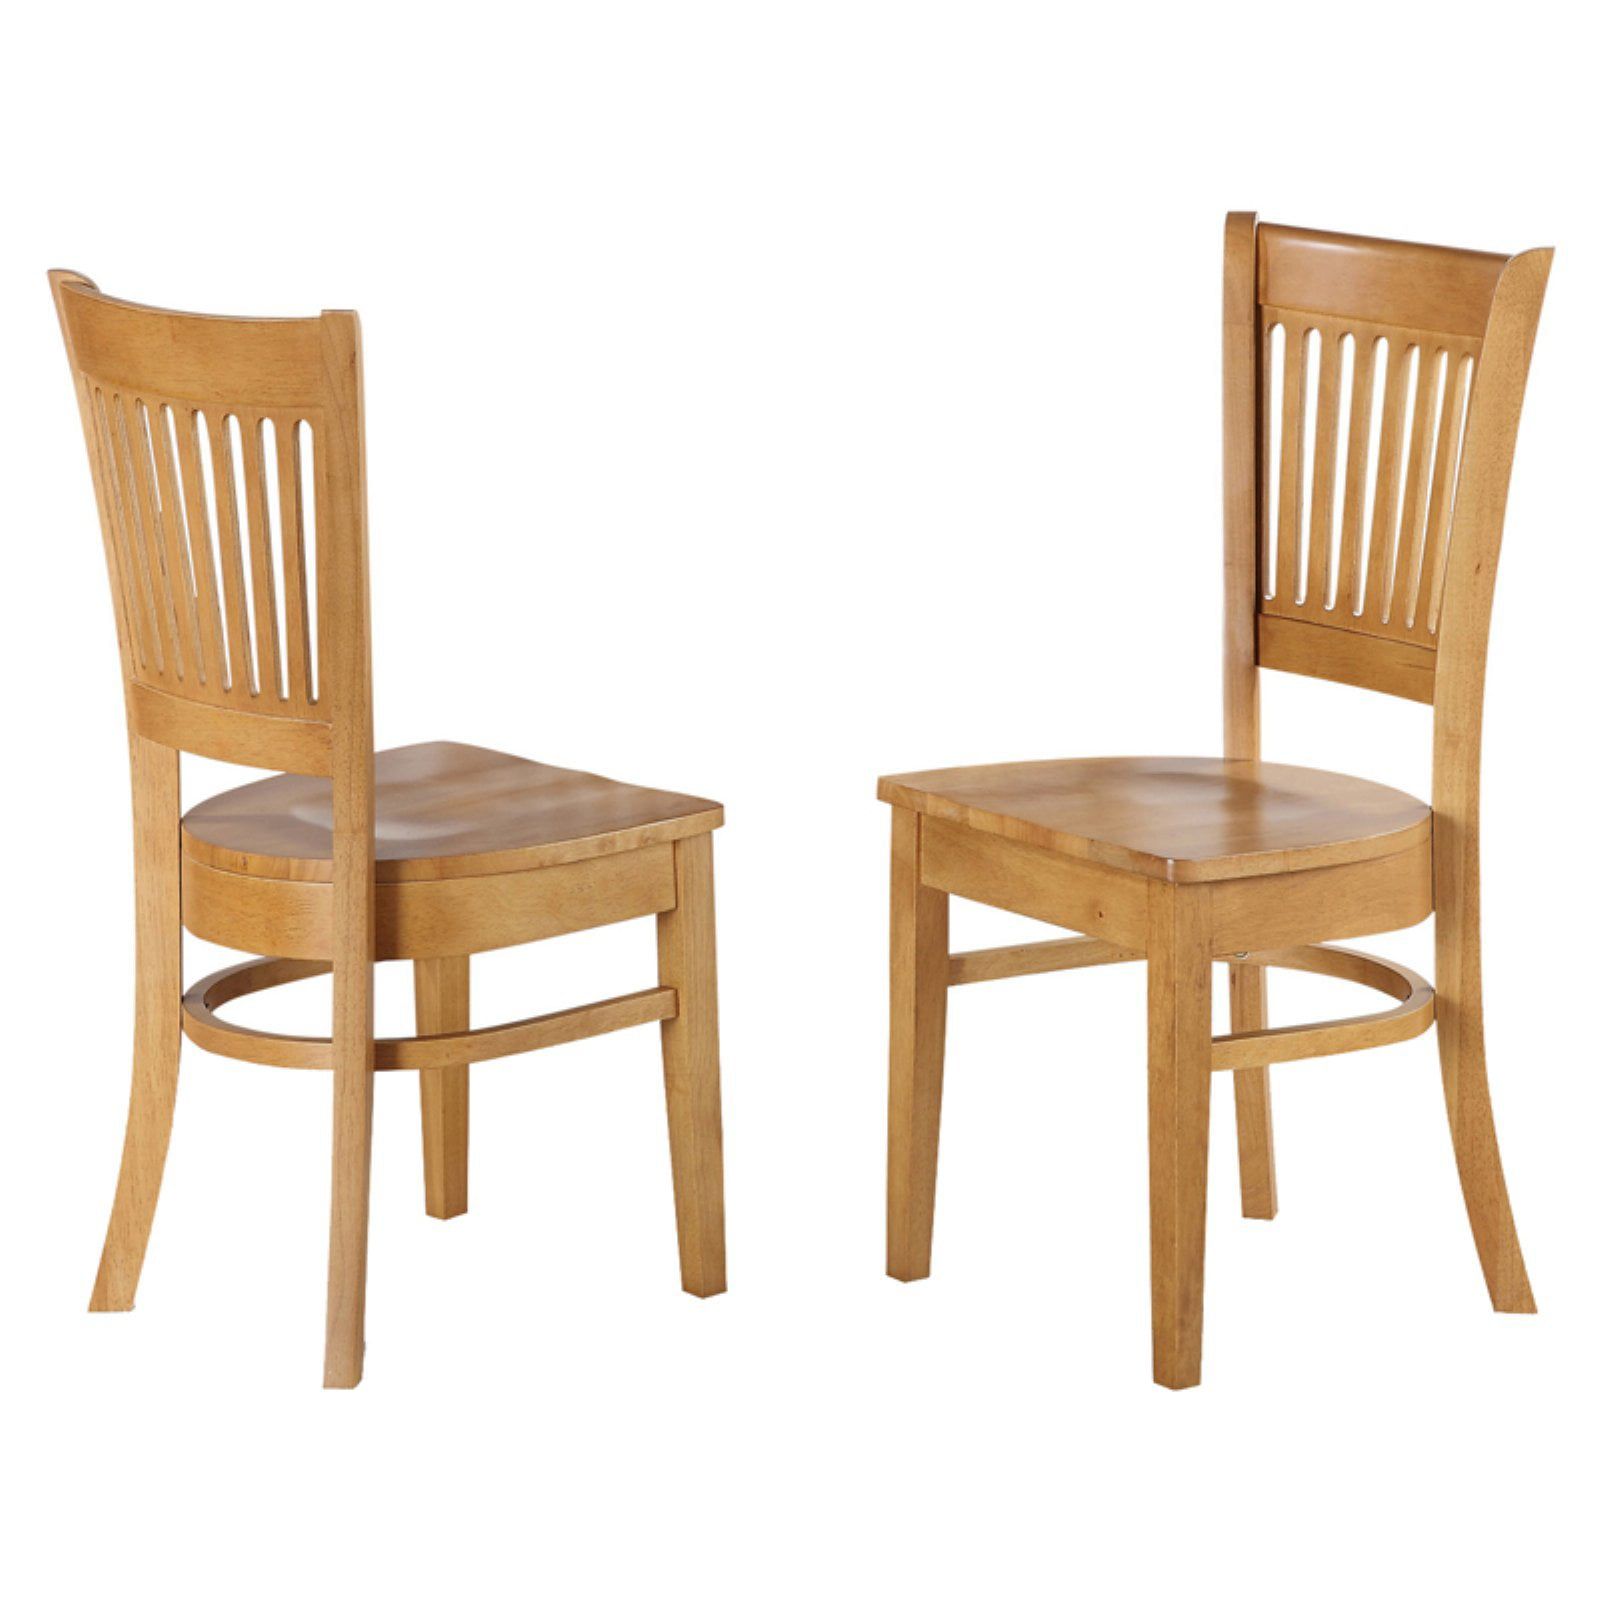 Set Of 2 Dining Chairs: East West Furniture Vancouver Dining Chair With Wooden